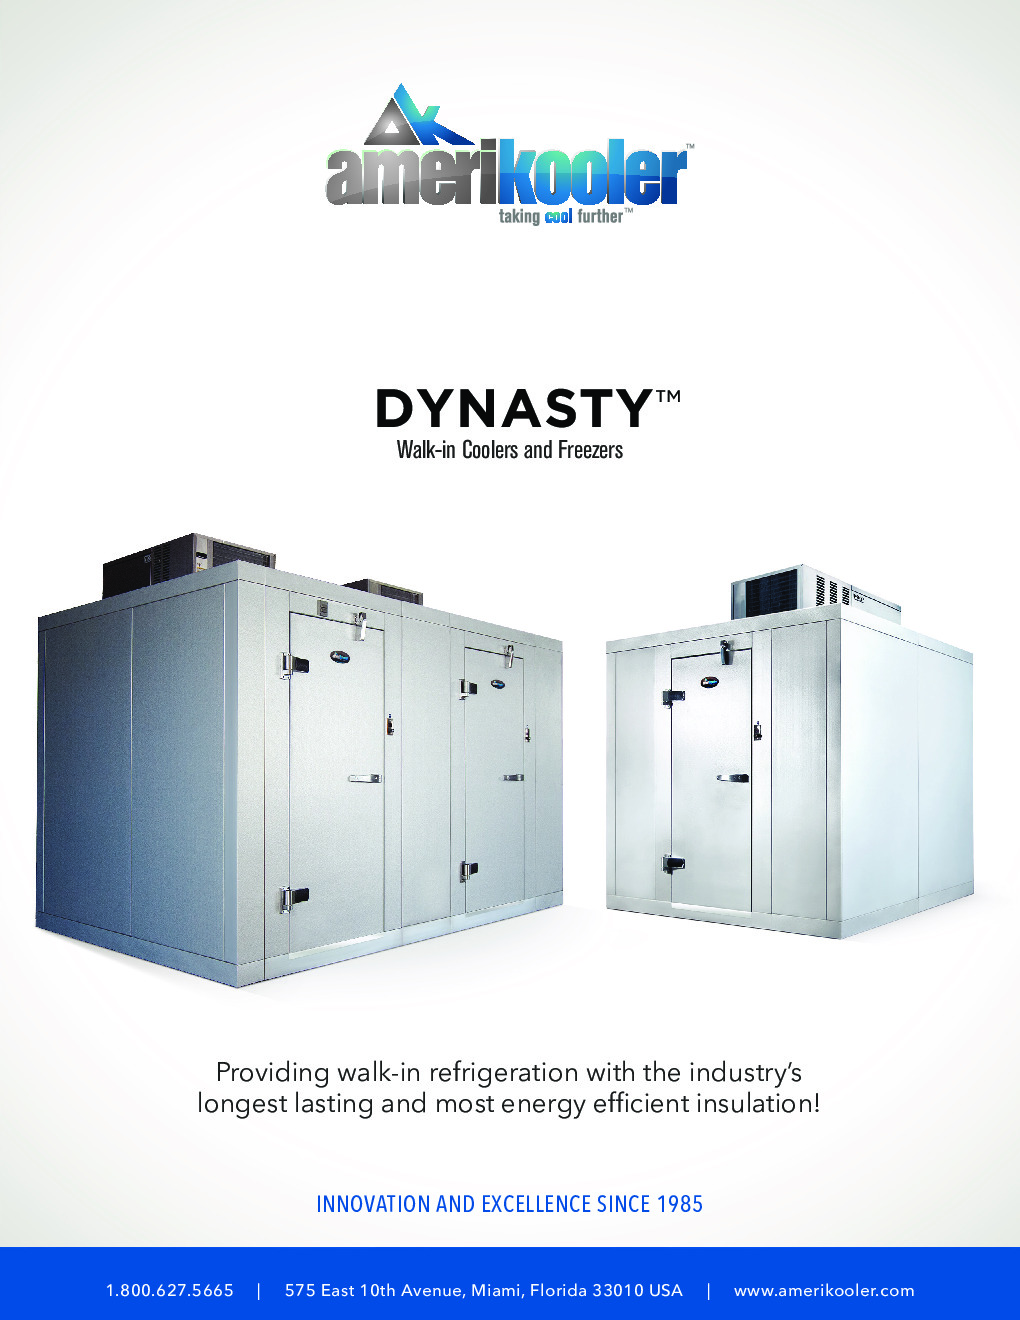 AmeriKooler DW071277F-4/8 Indoor 7' X 12' Walk-In, 8' L Cooler with Floor and 4' L Freezer, Box Only